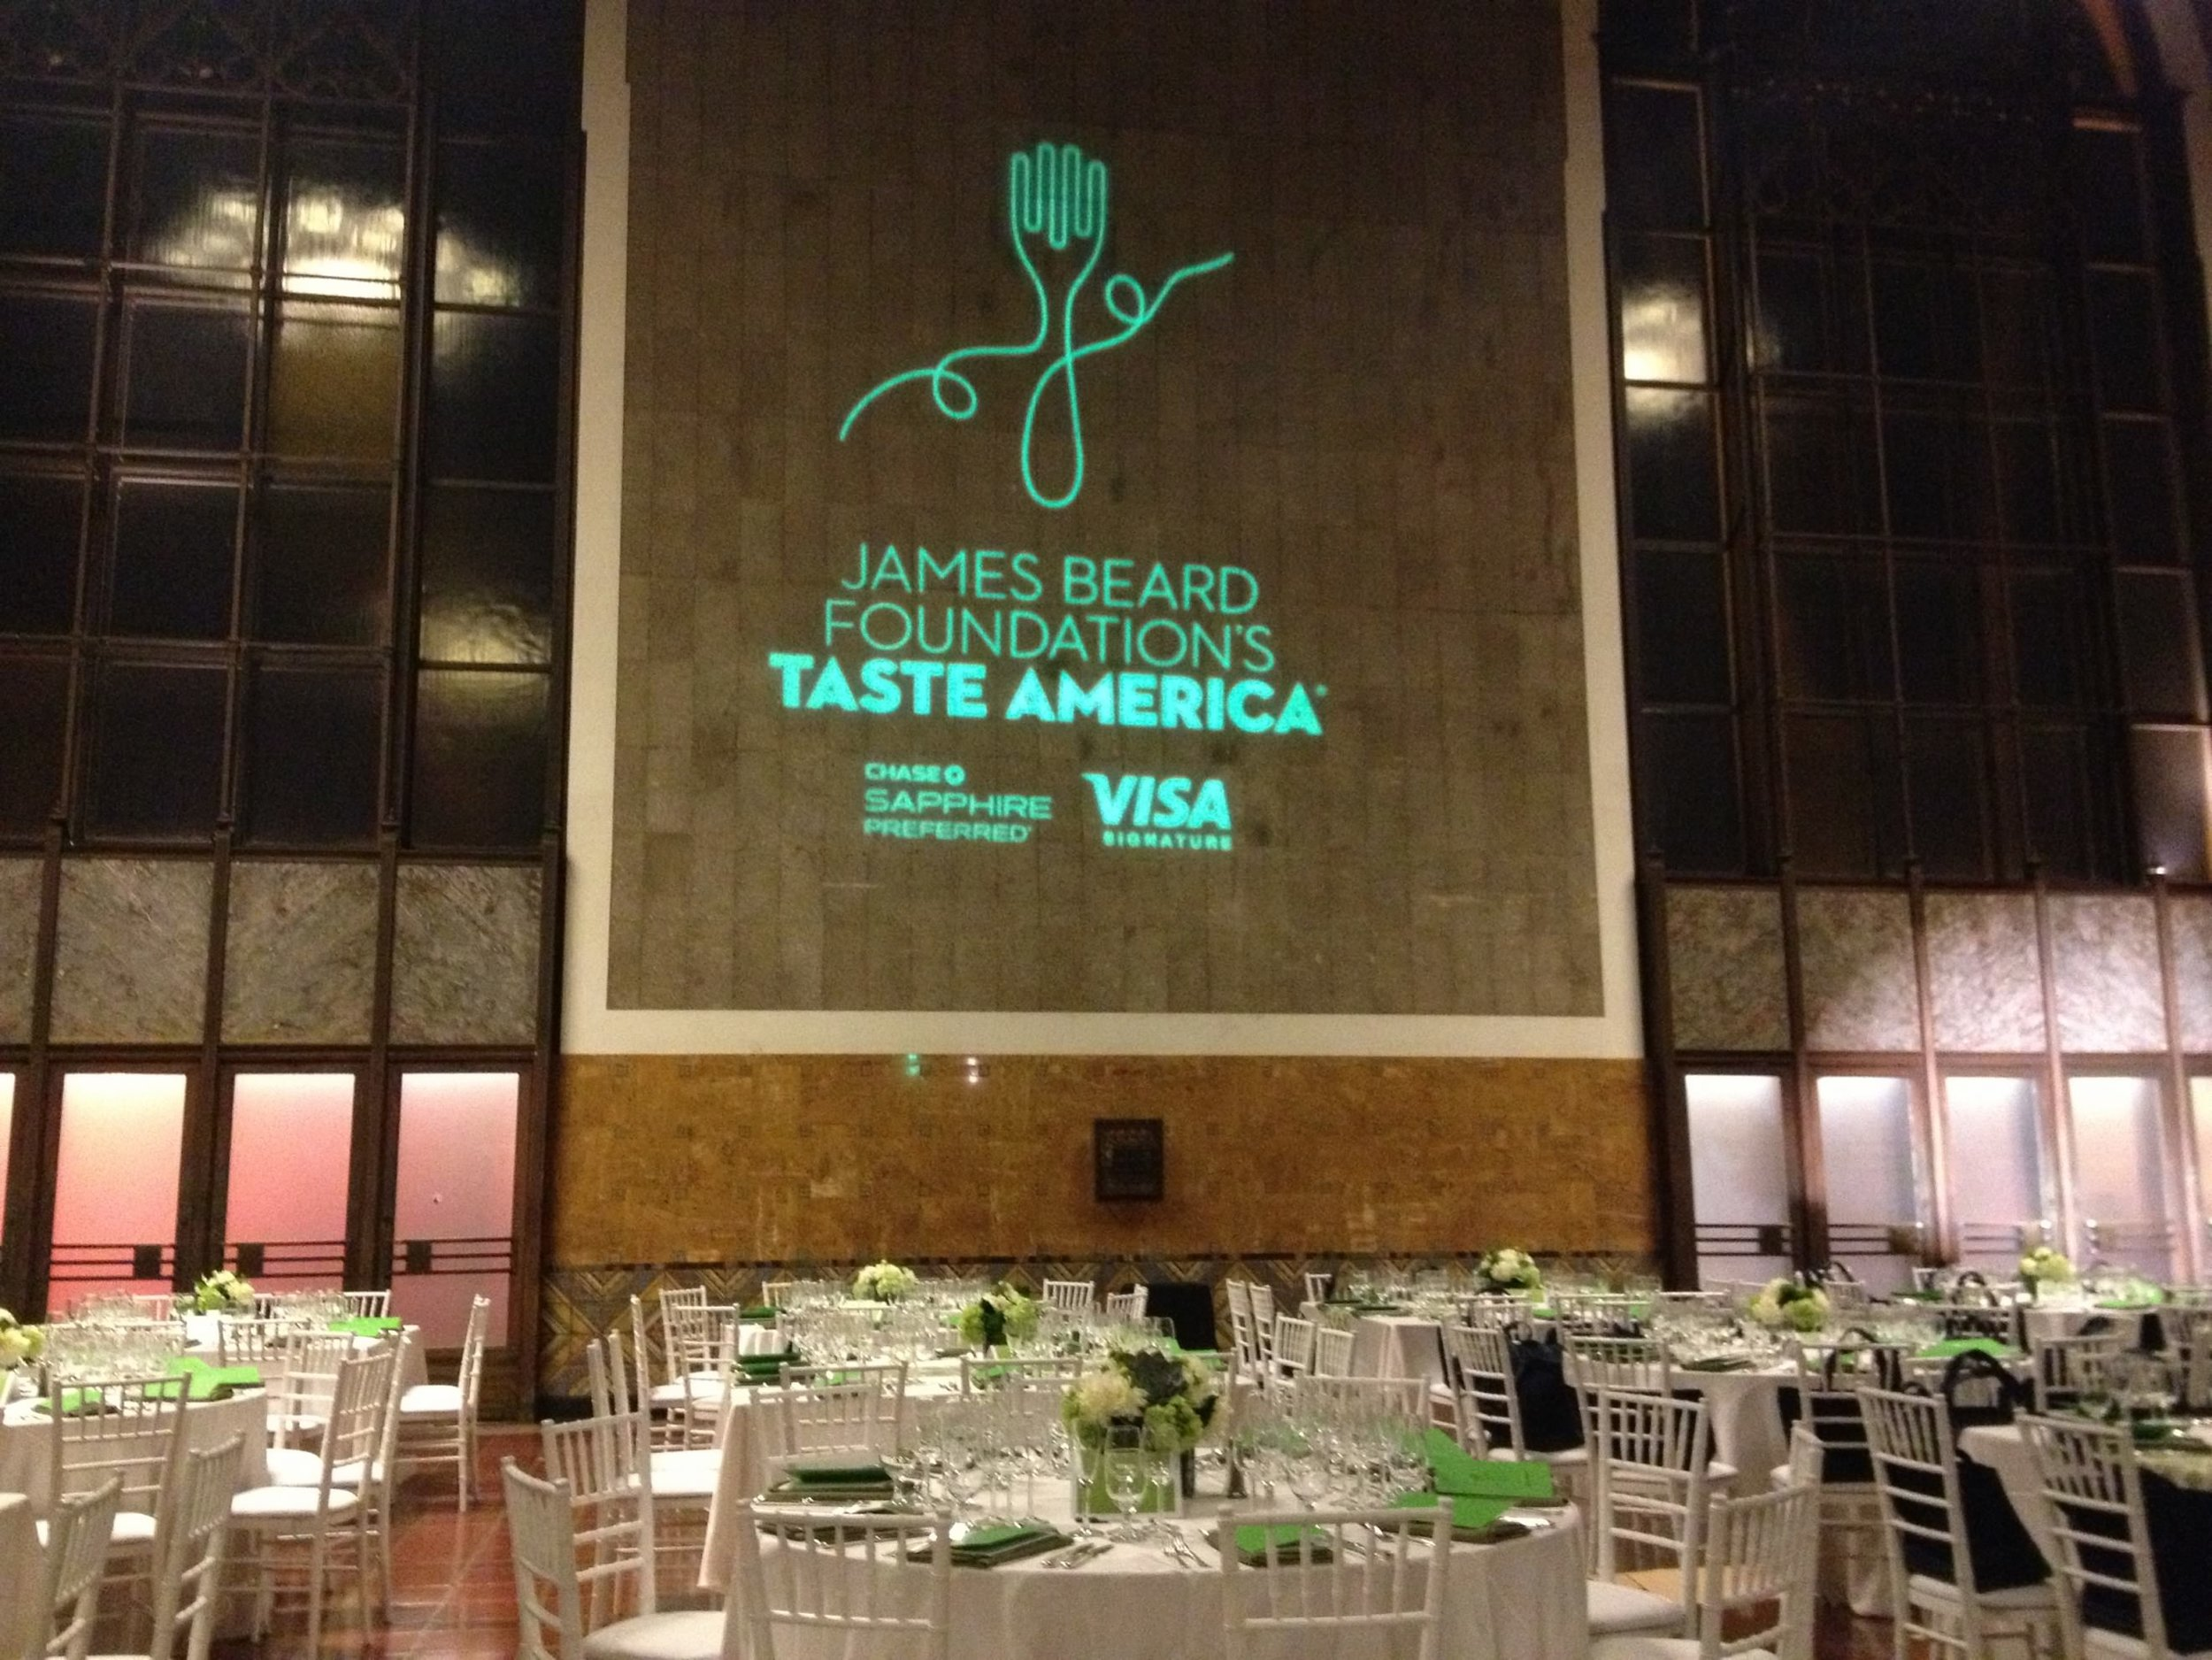 James Beard Foundation, Taste America